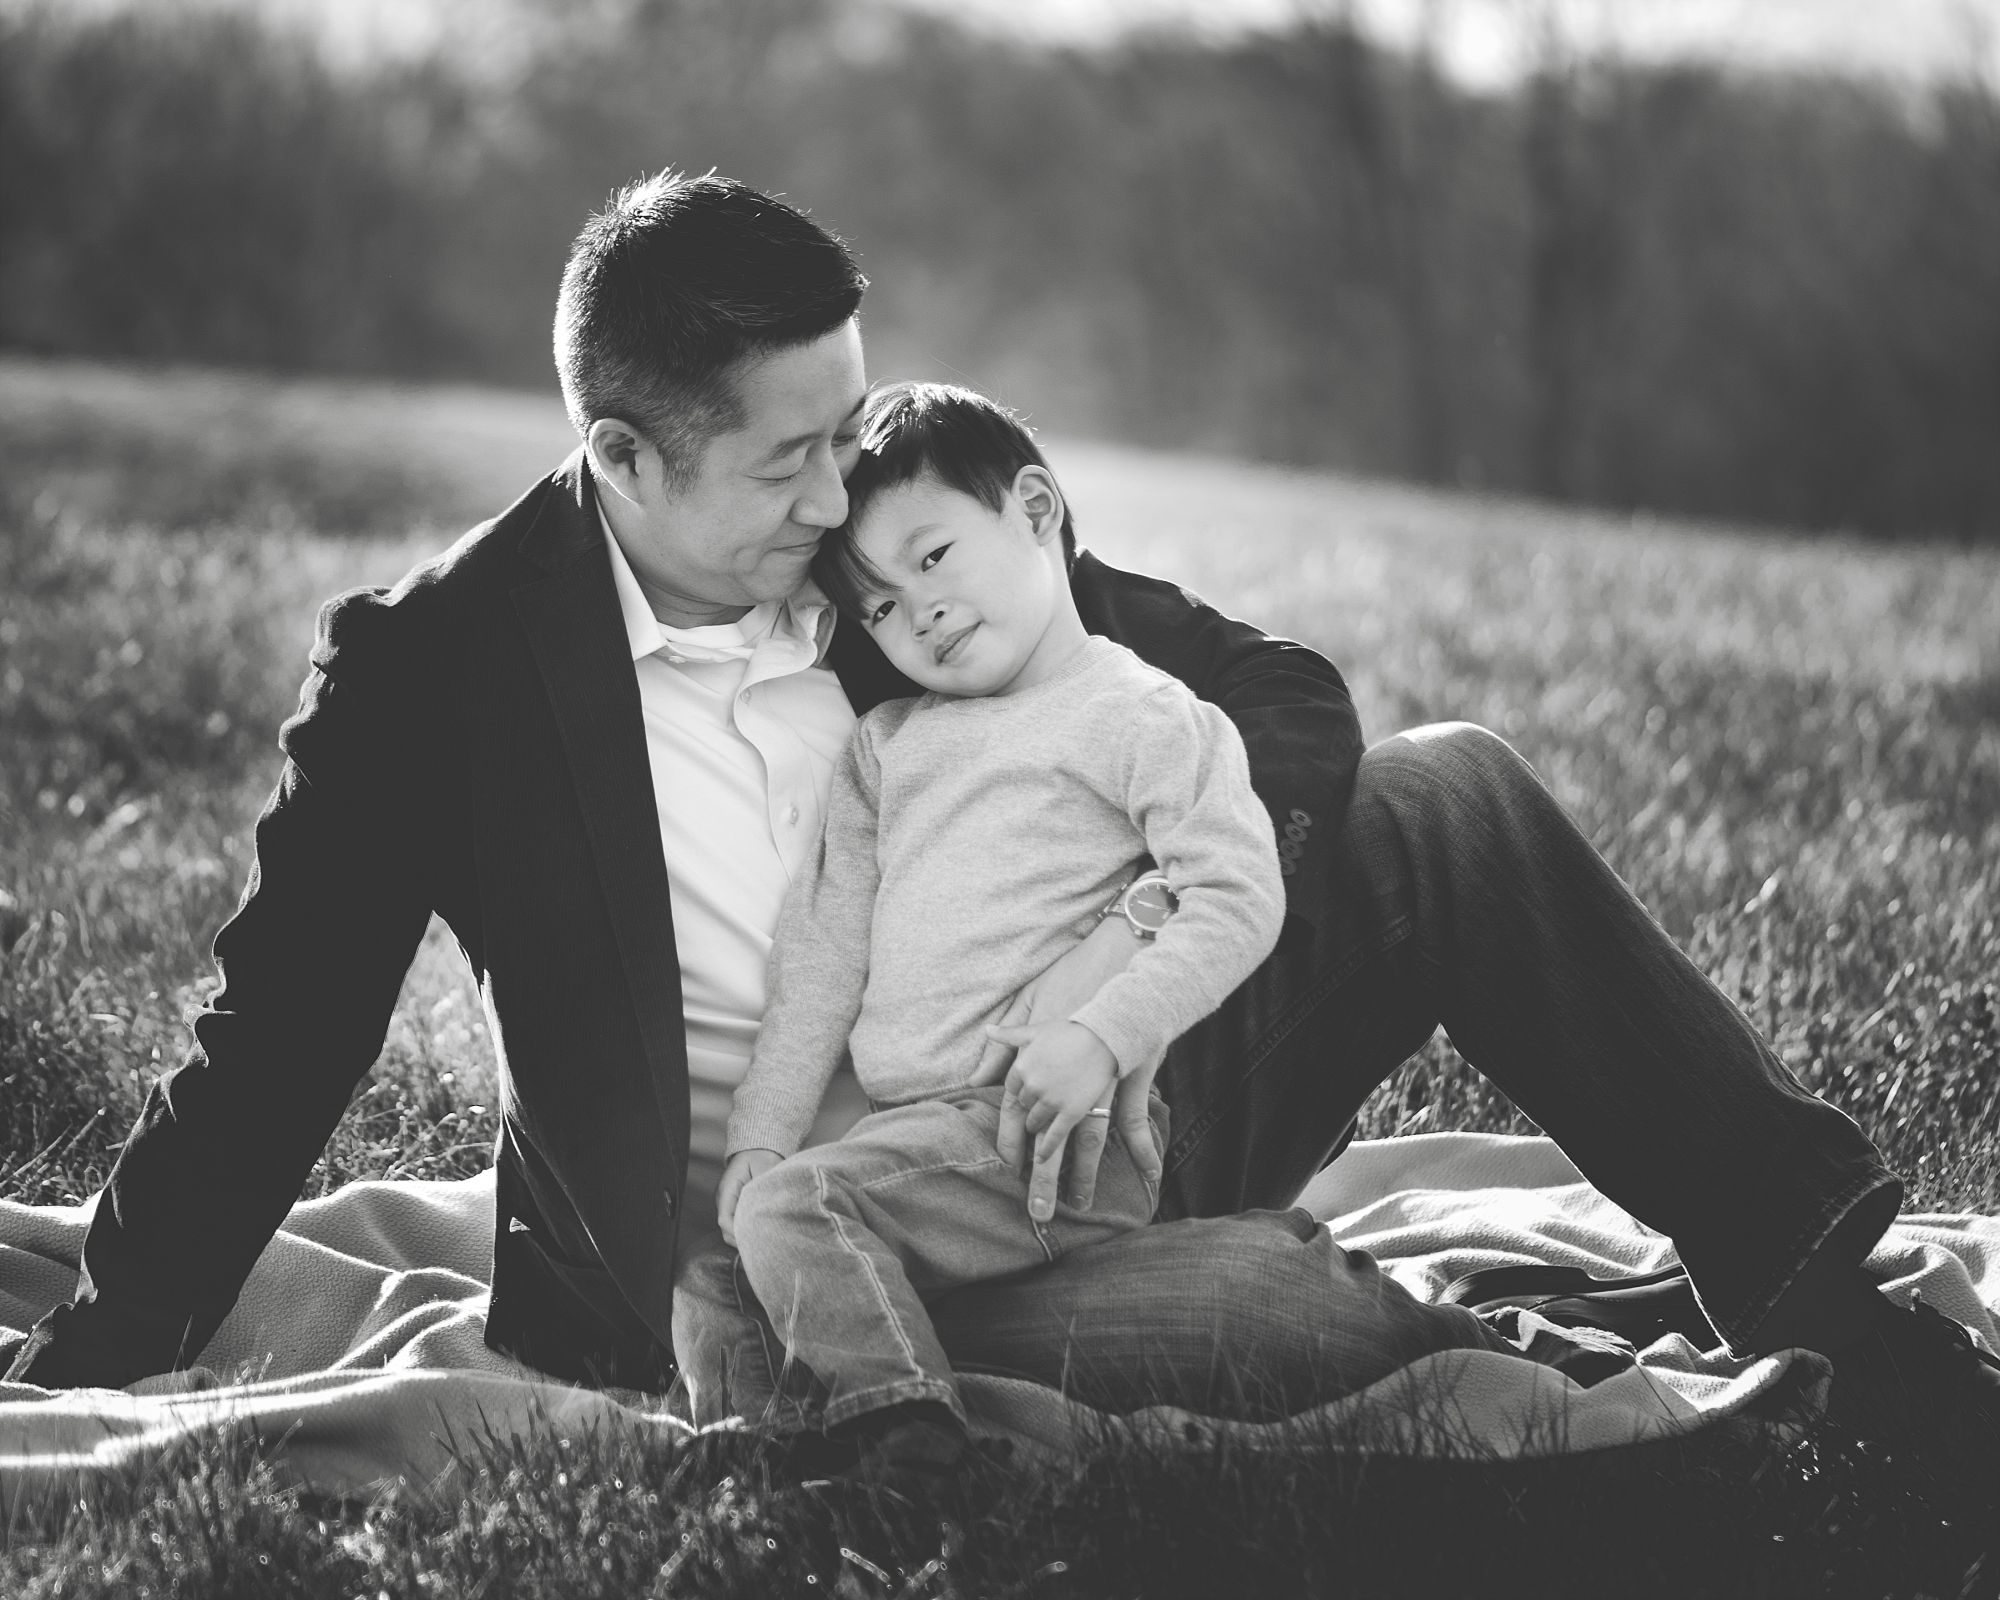 Dad holding toddler son on his lap and looking down at him